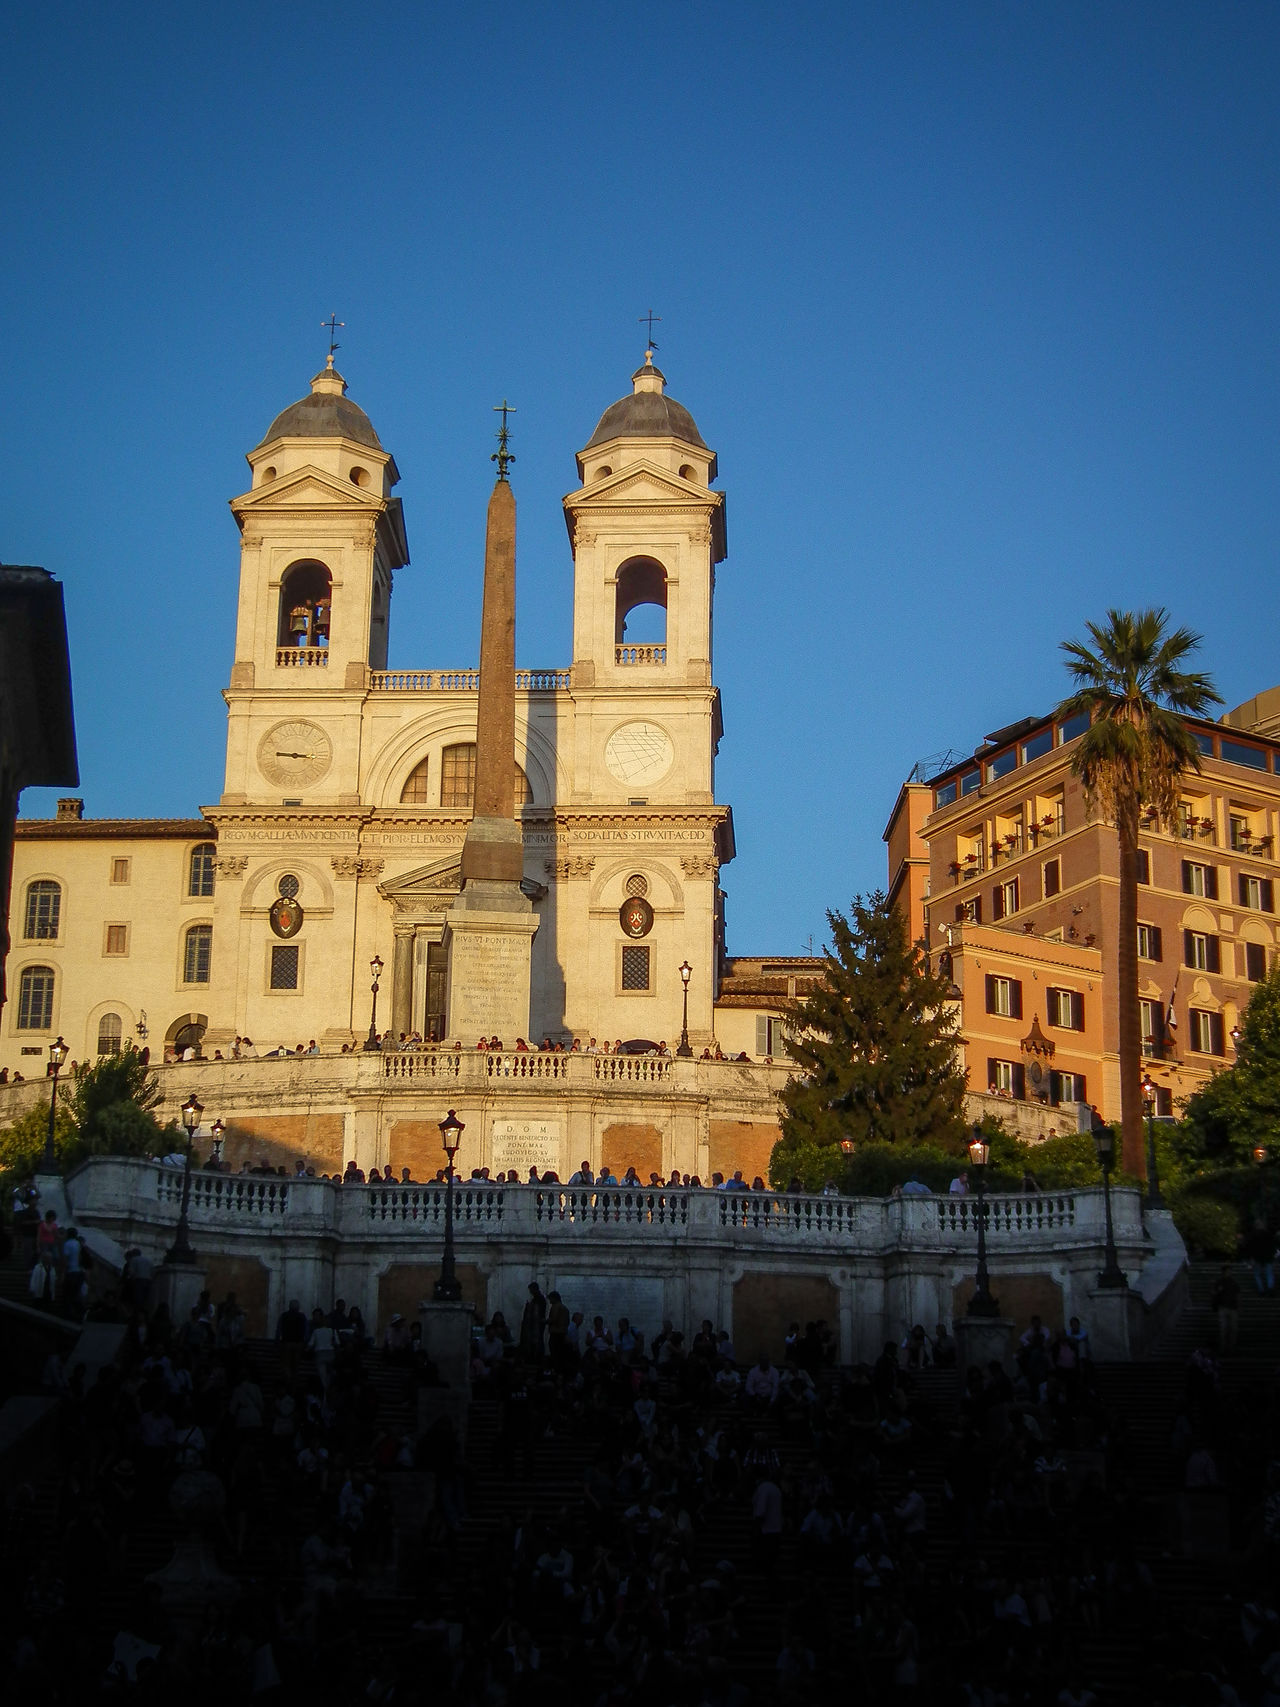 Architecture Baroque Style Building Exterior Built Structure Clear Sky Day Evening Light Itala Italie Italien Italy Italy❤️ Italy🇮🇹 Large Group Of People Low Angle View Outdoors Place Of Worship Religion Rom Roma Rome Scalinata Spirituality Travel Destinations Trinitademonti